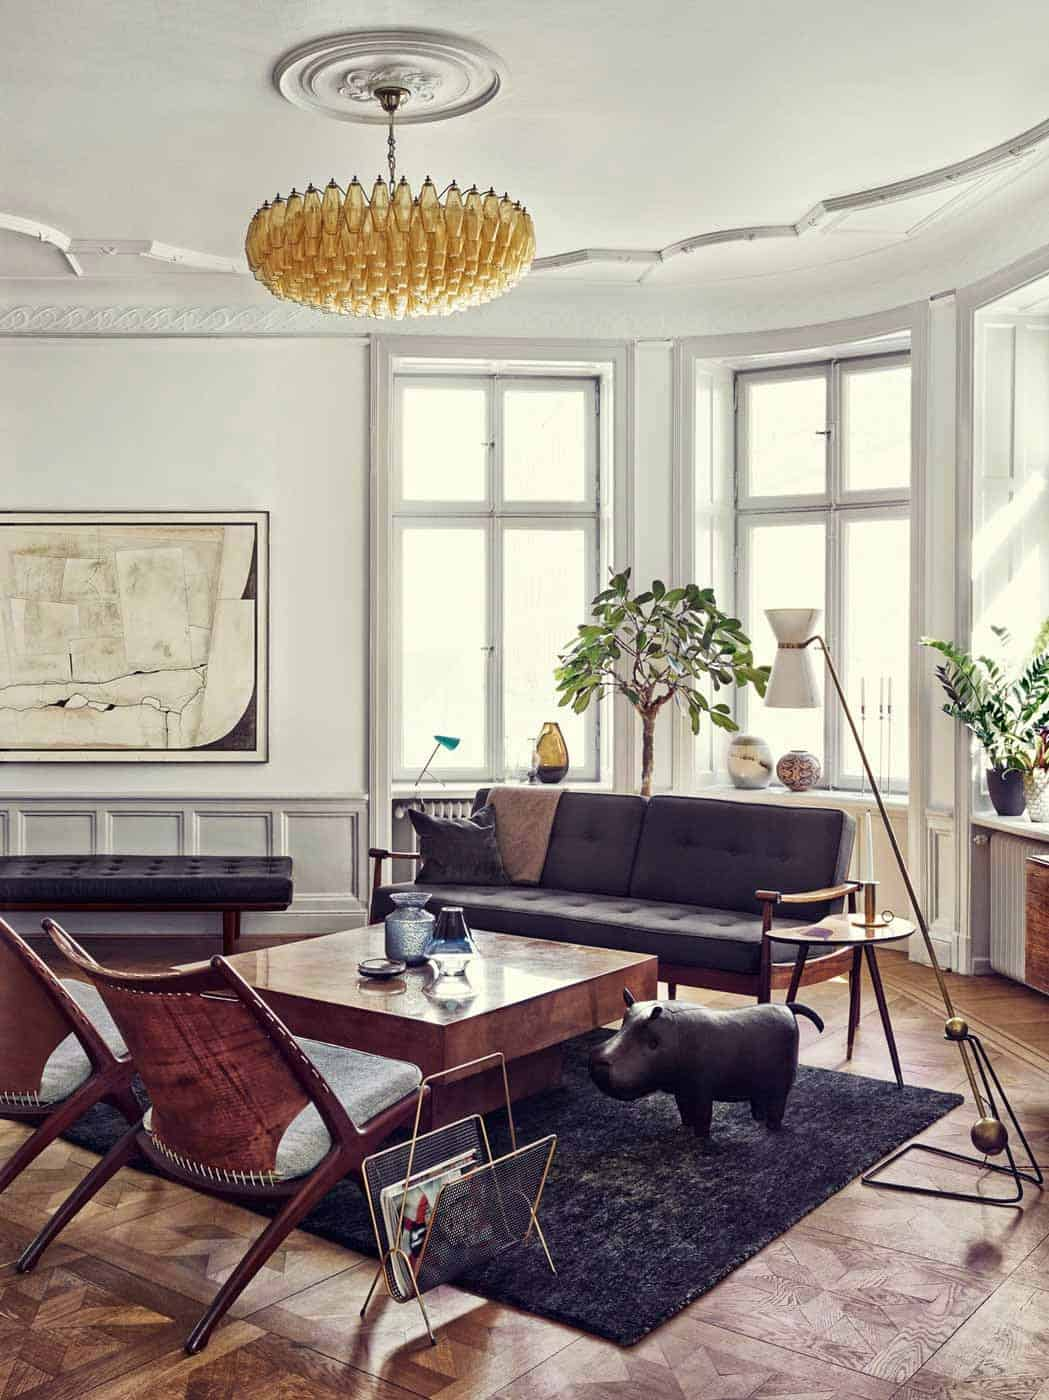 Genial Mid Century Apartment Inspiration